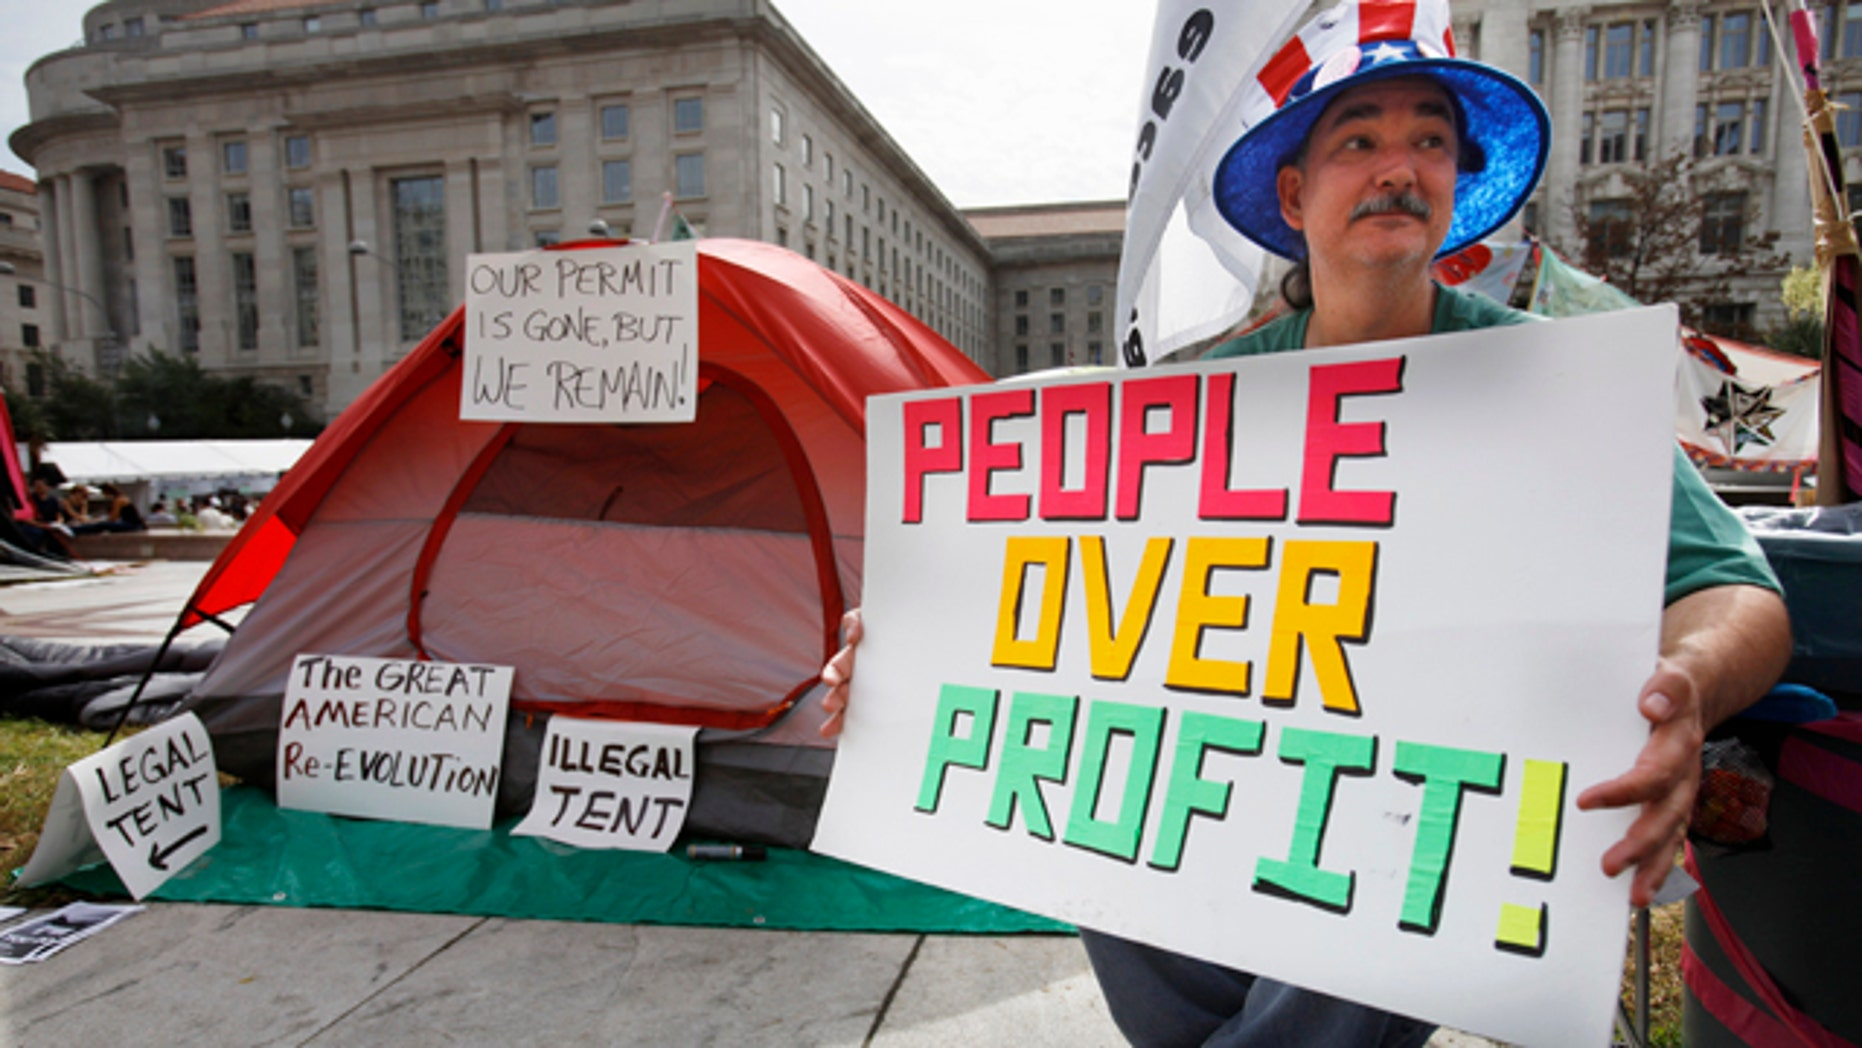 Oct. 10, 2011: Cameron Halket of Dallas sits by his tent set up at Freedom Plaza in Washington.